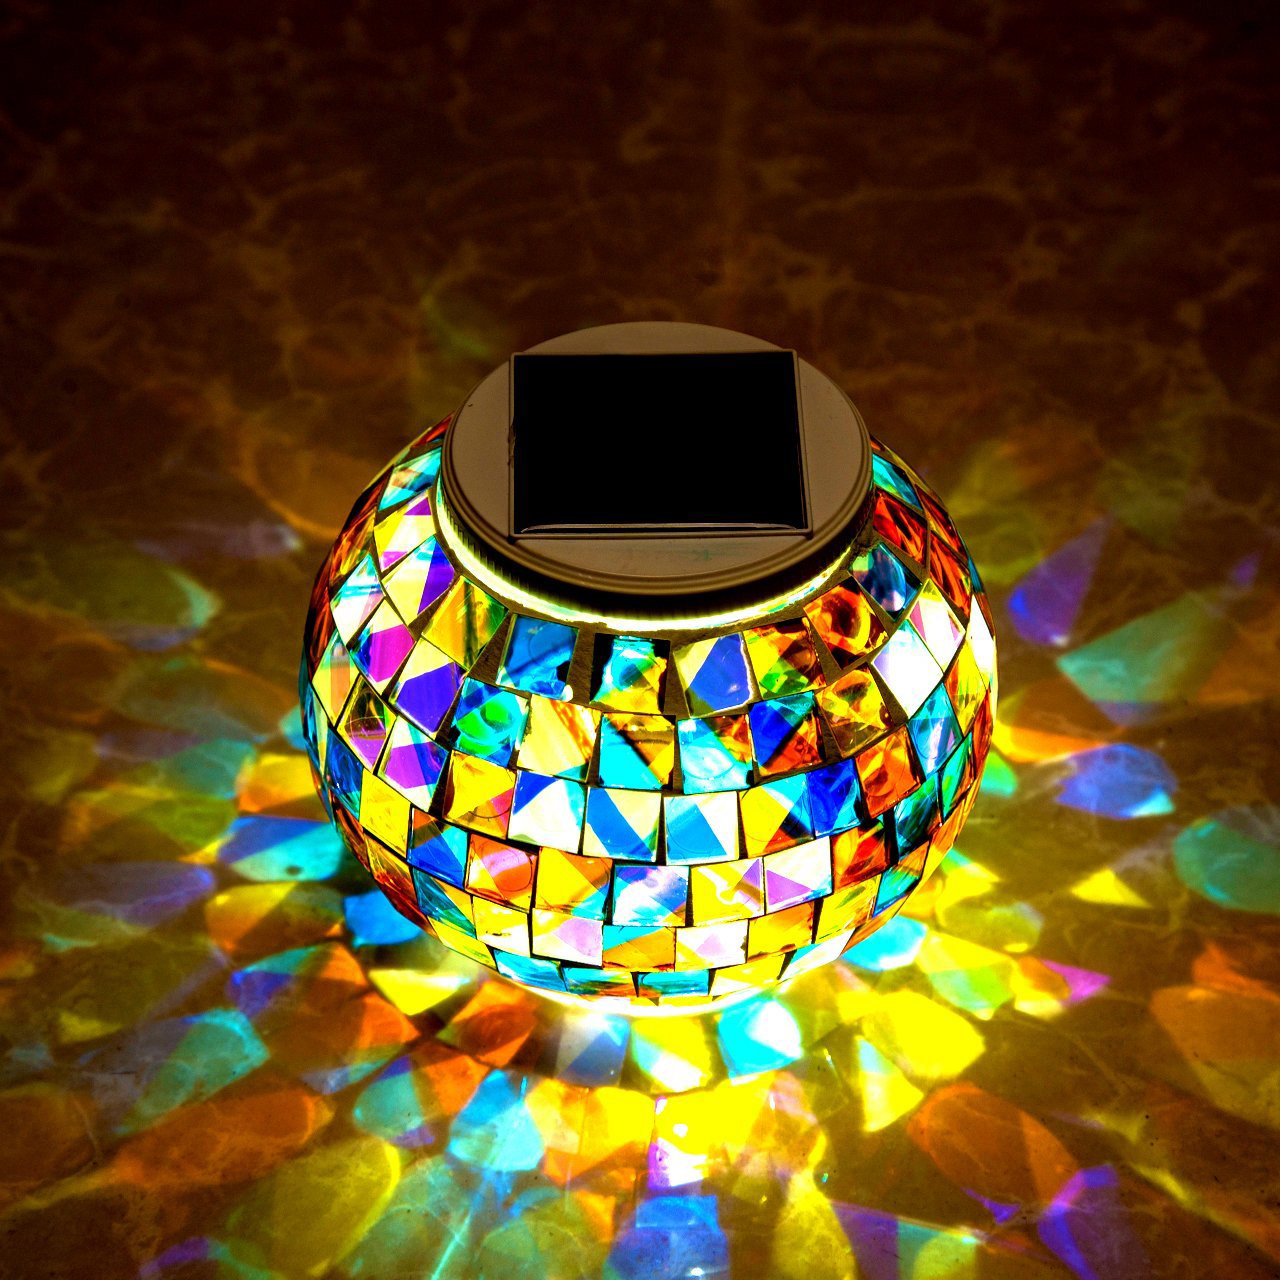 Garden Solar Power Mosaic Glass Ball Colorful Led Light